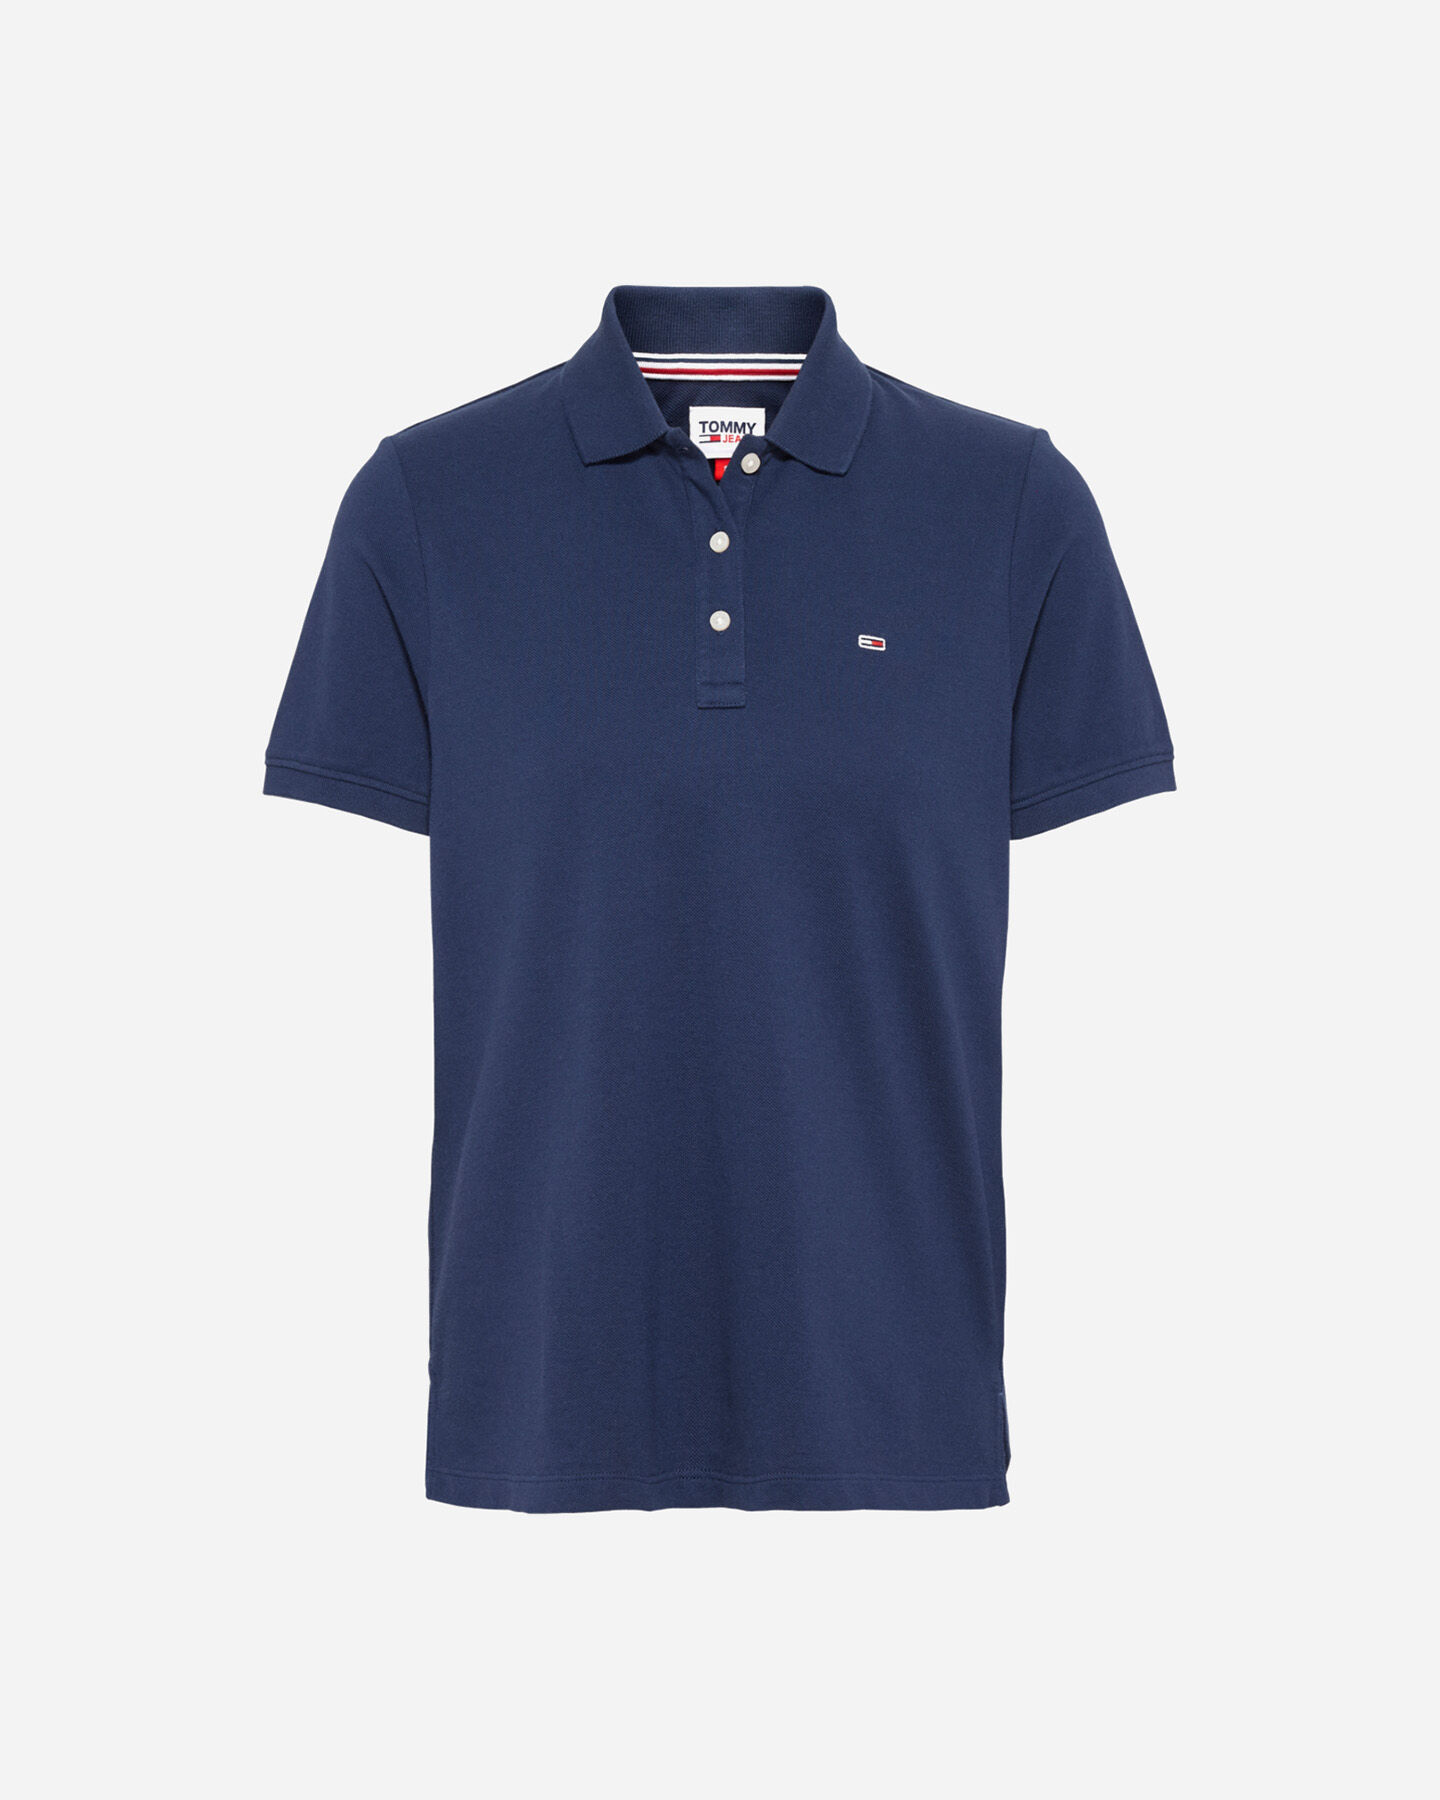 Polo TOMMY HILFIGER SLIM SMALL FLAG W S4089066 scatto 0